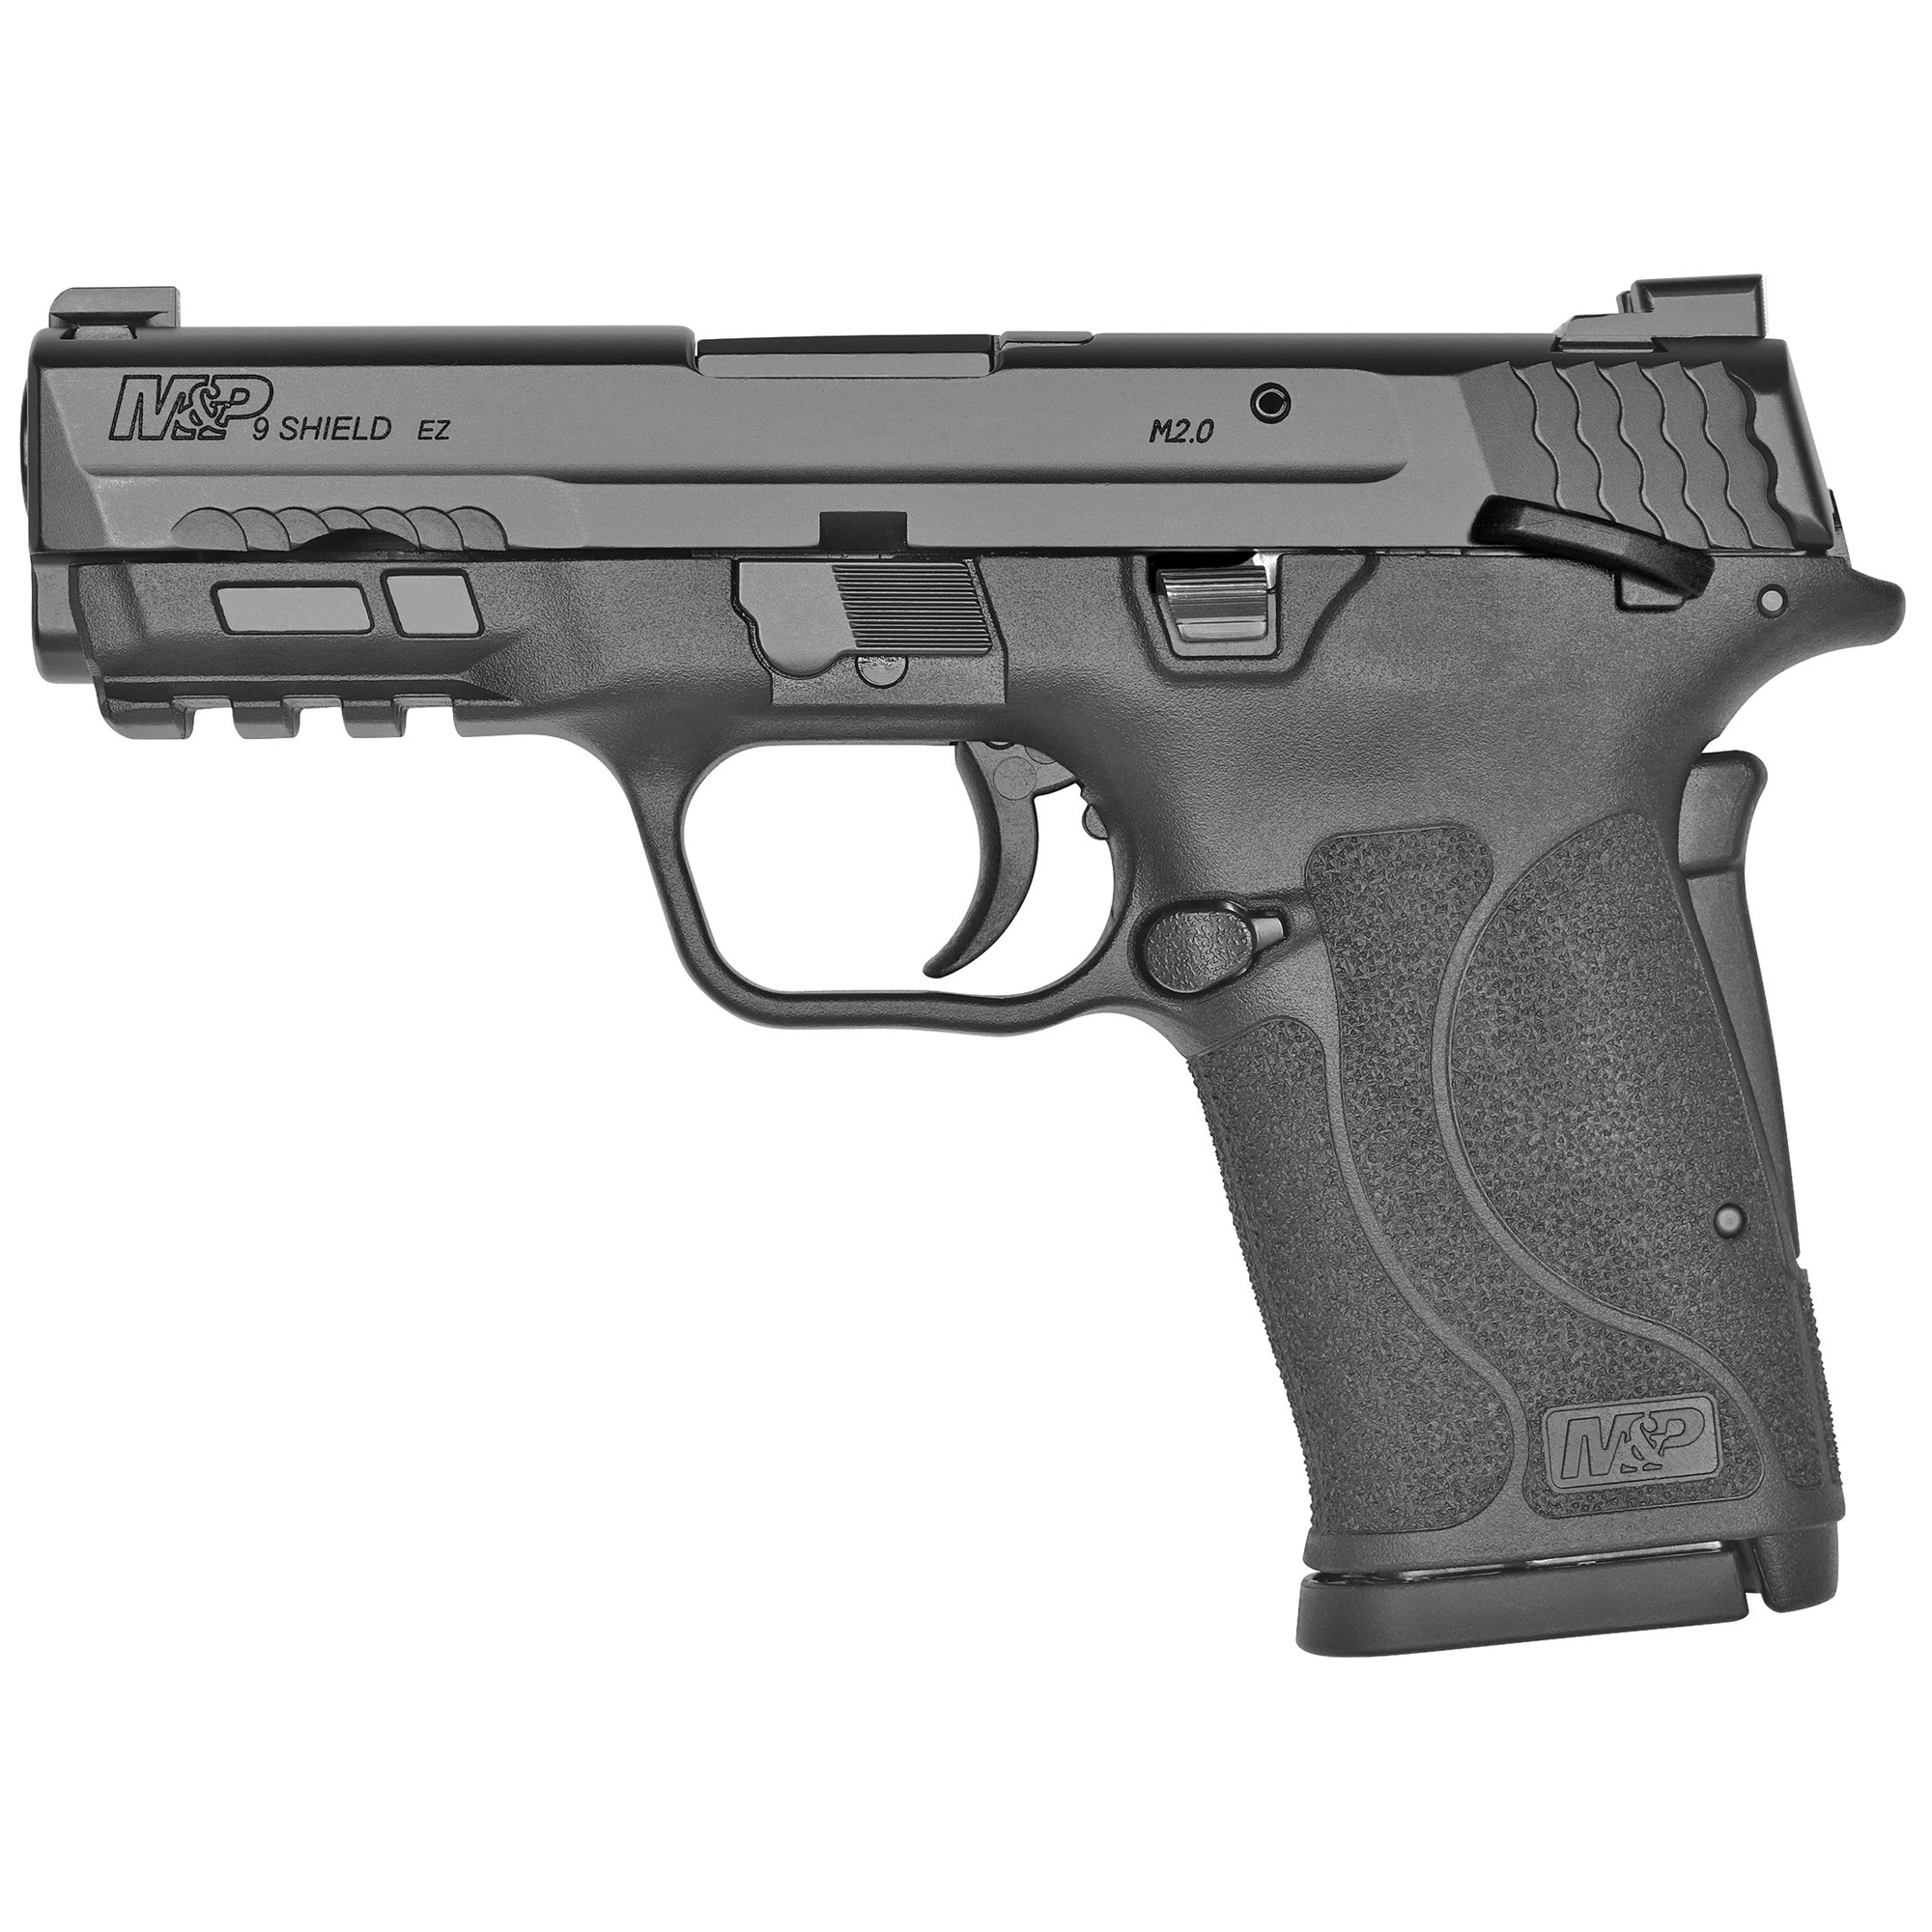 NEW Smith & Wesson M&P Shield EZ 9mm subcompact with TruGlo Pro night sights just $560 out-the-door!!!